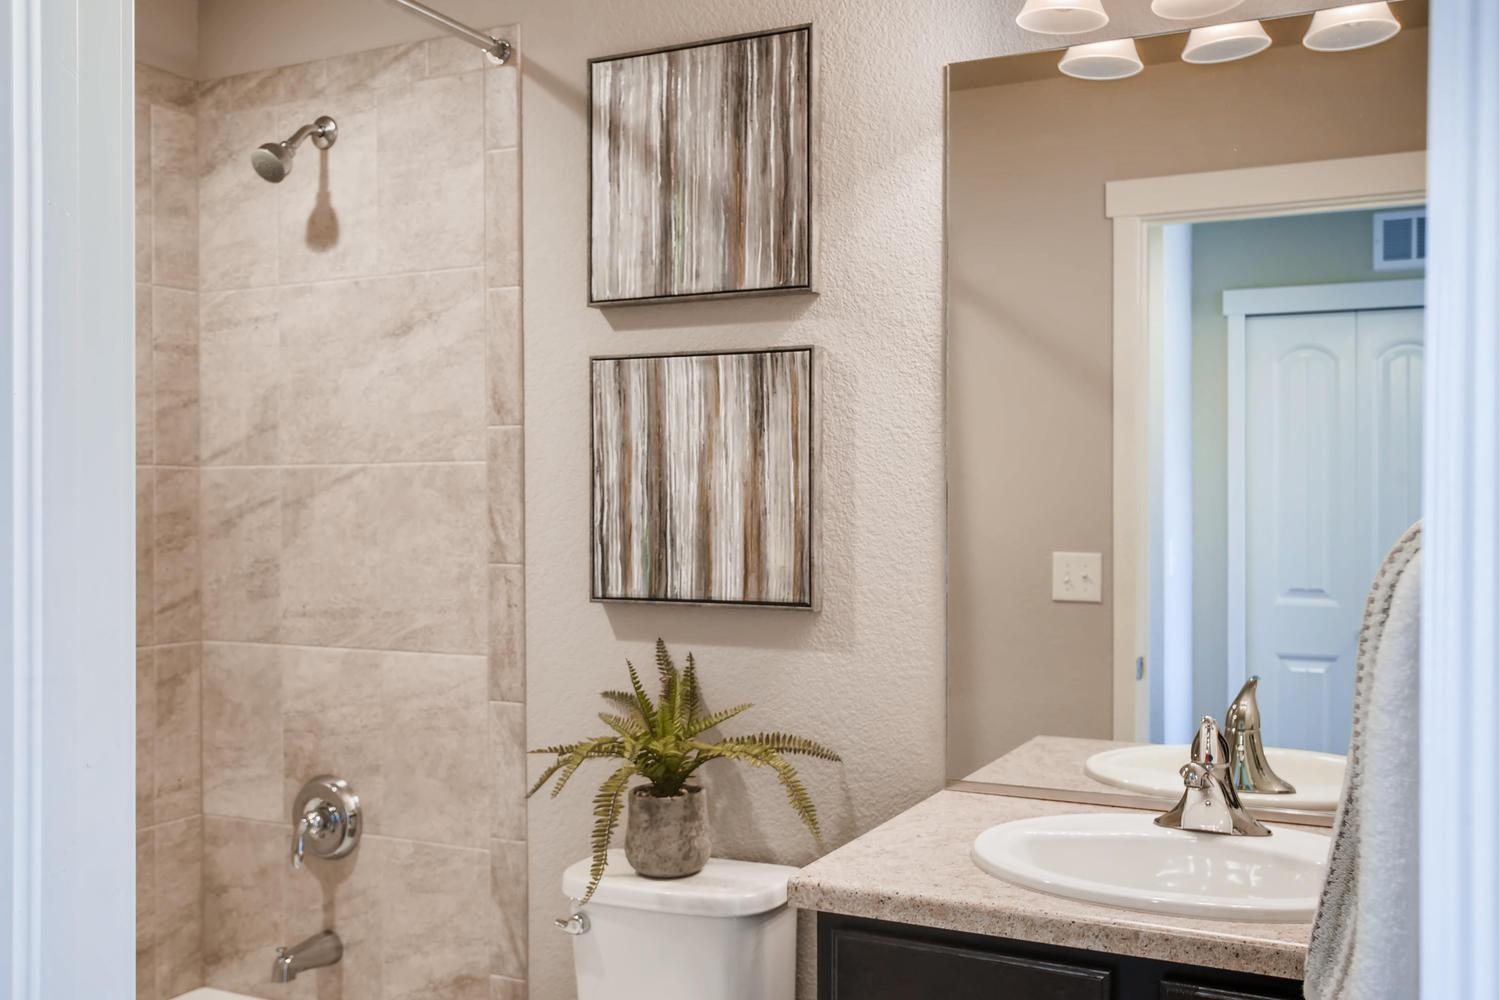 Bathroom featured in the 221 By Classic Homes in Colorado Springs, CO